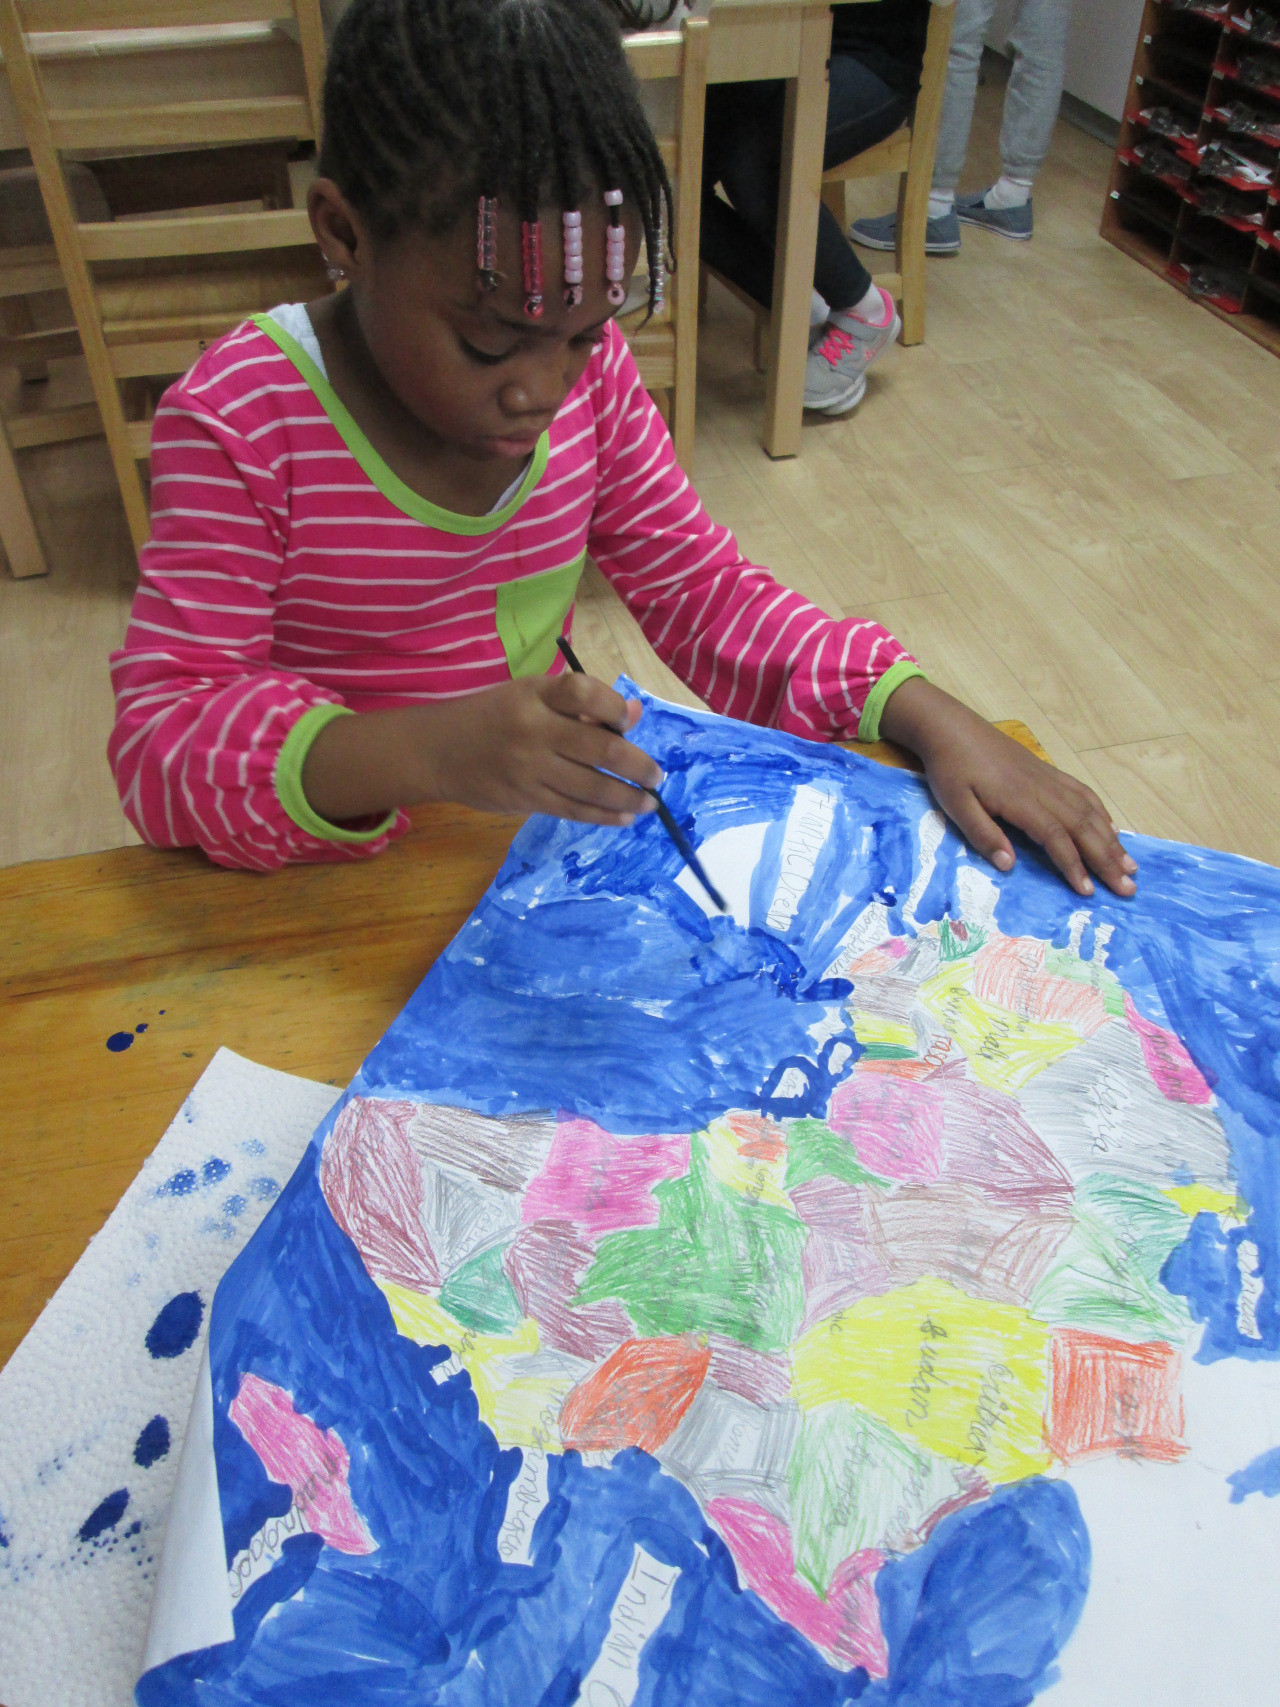 Lower Elementary East students continued to study the continent of Africa. Before painting, a first grade student traced and labeled the countries, labeled each corresponding capital and identified other elements of her map, then completed the final touches.